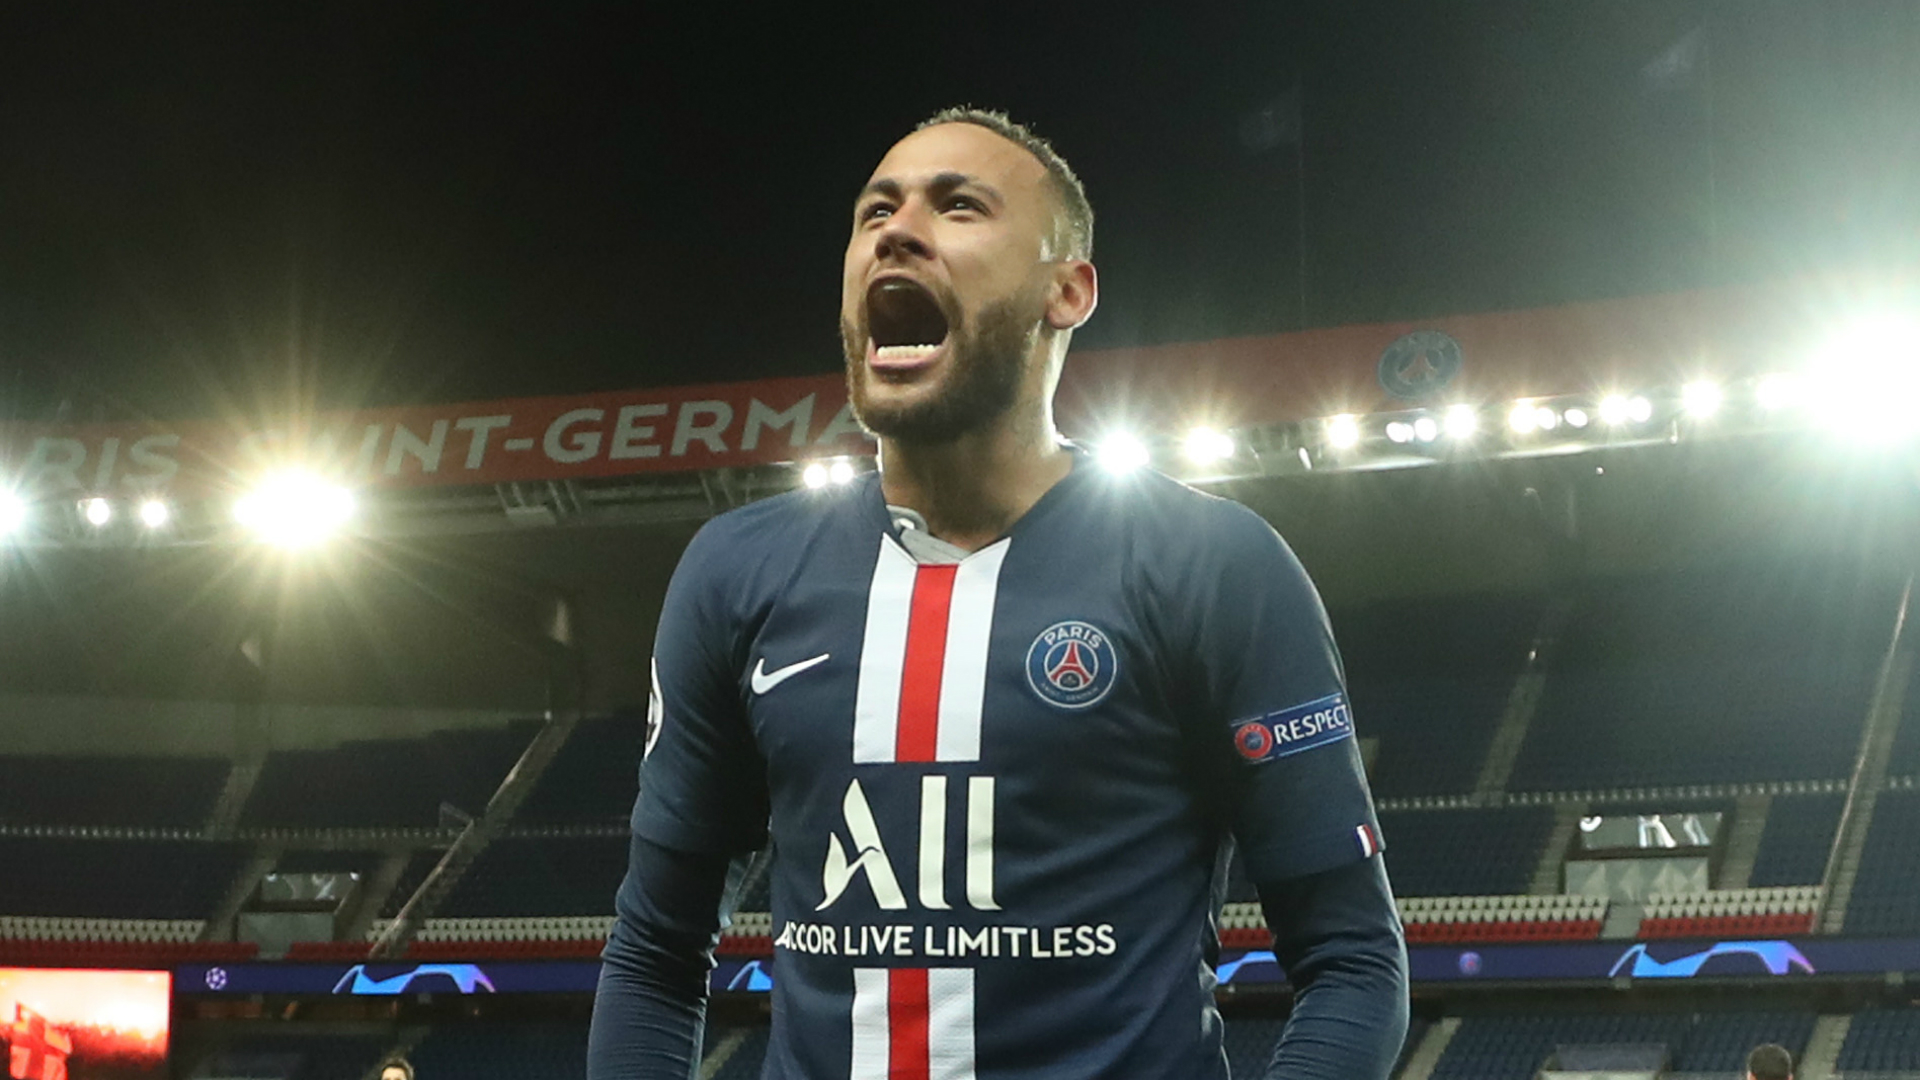 Neymar out to 'make history' for PSG when Champions League returns